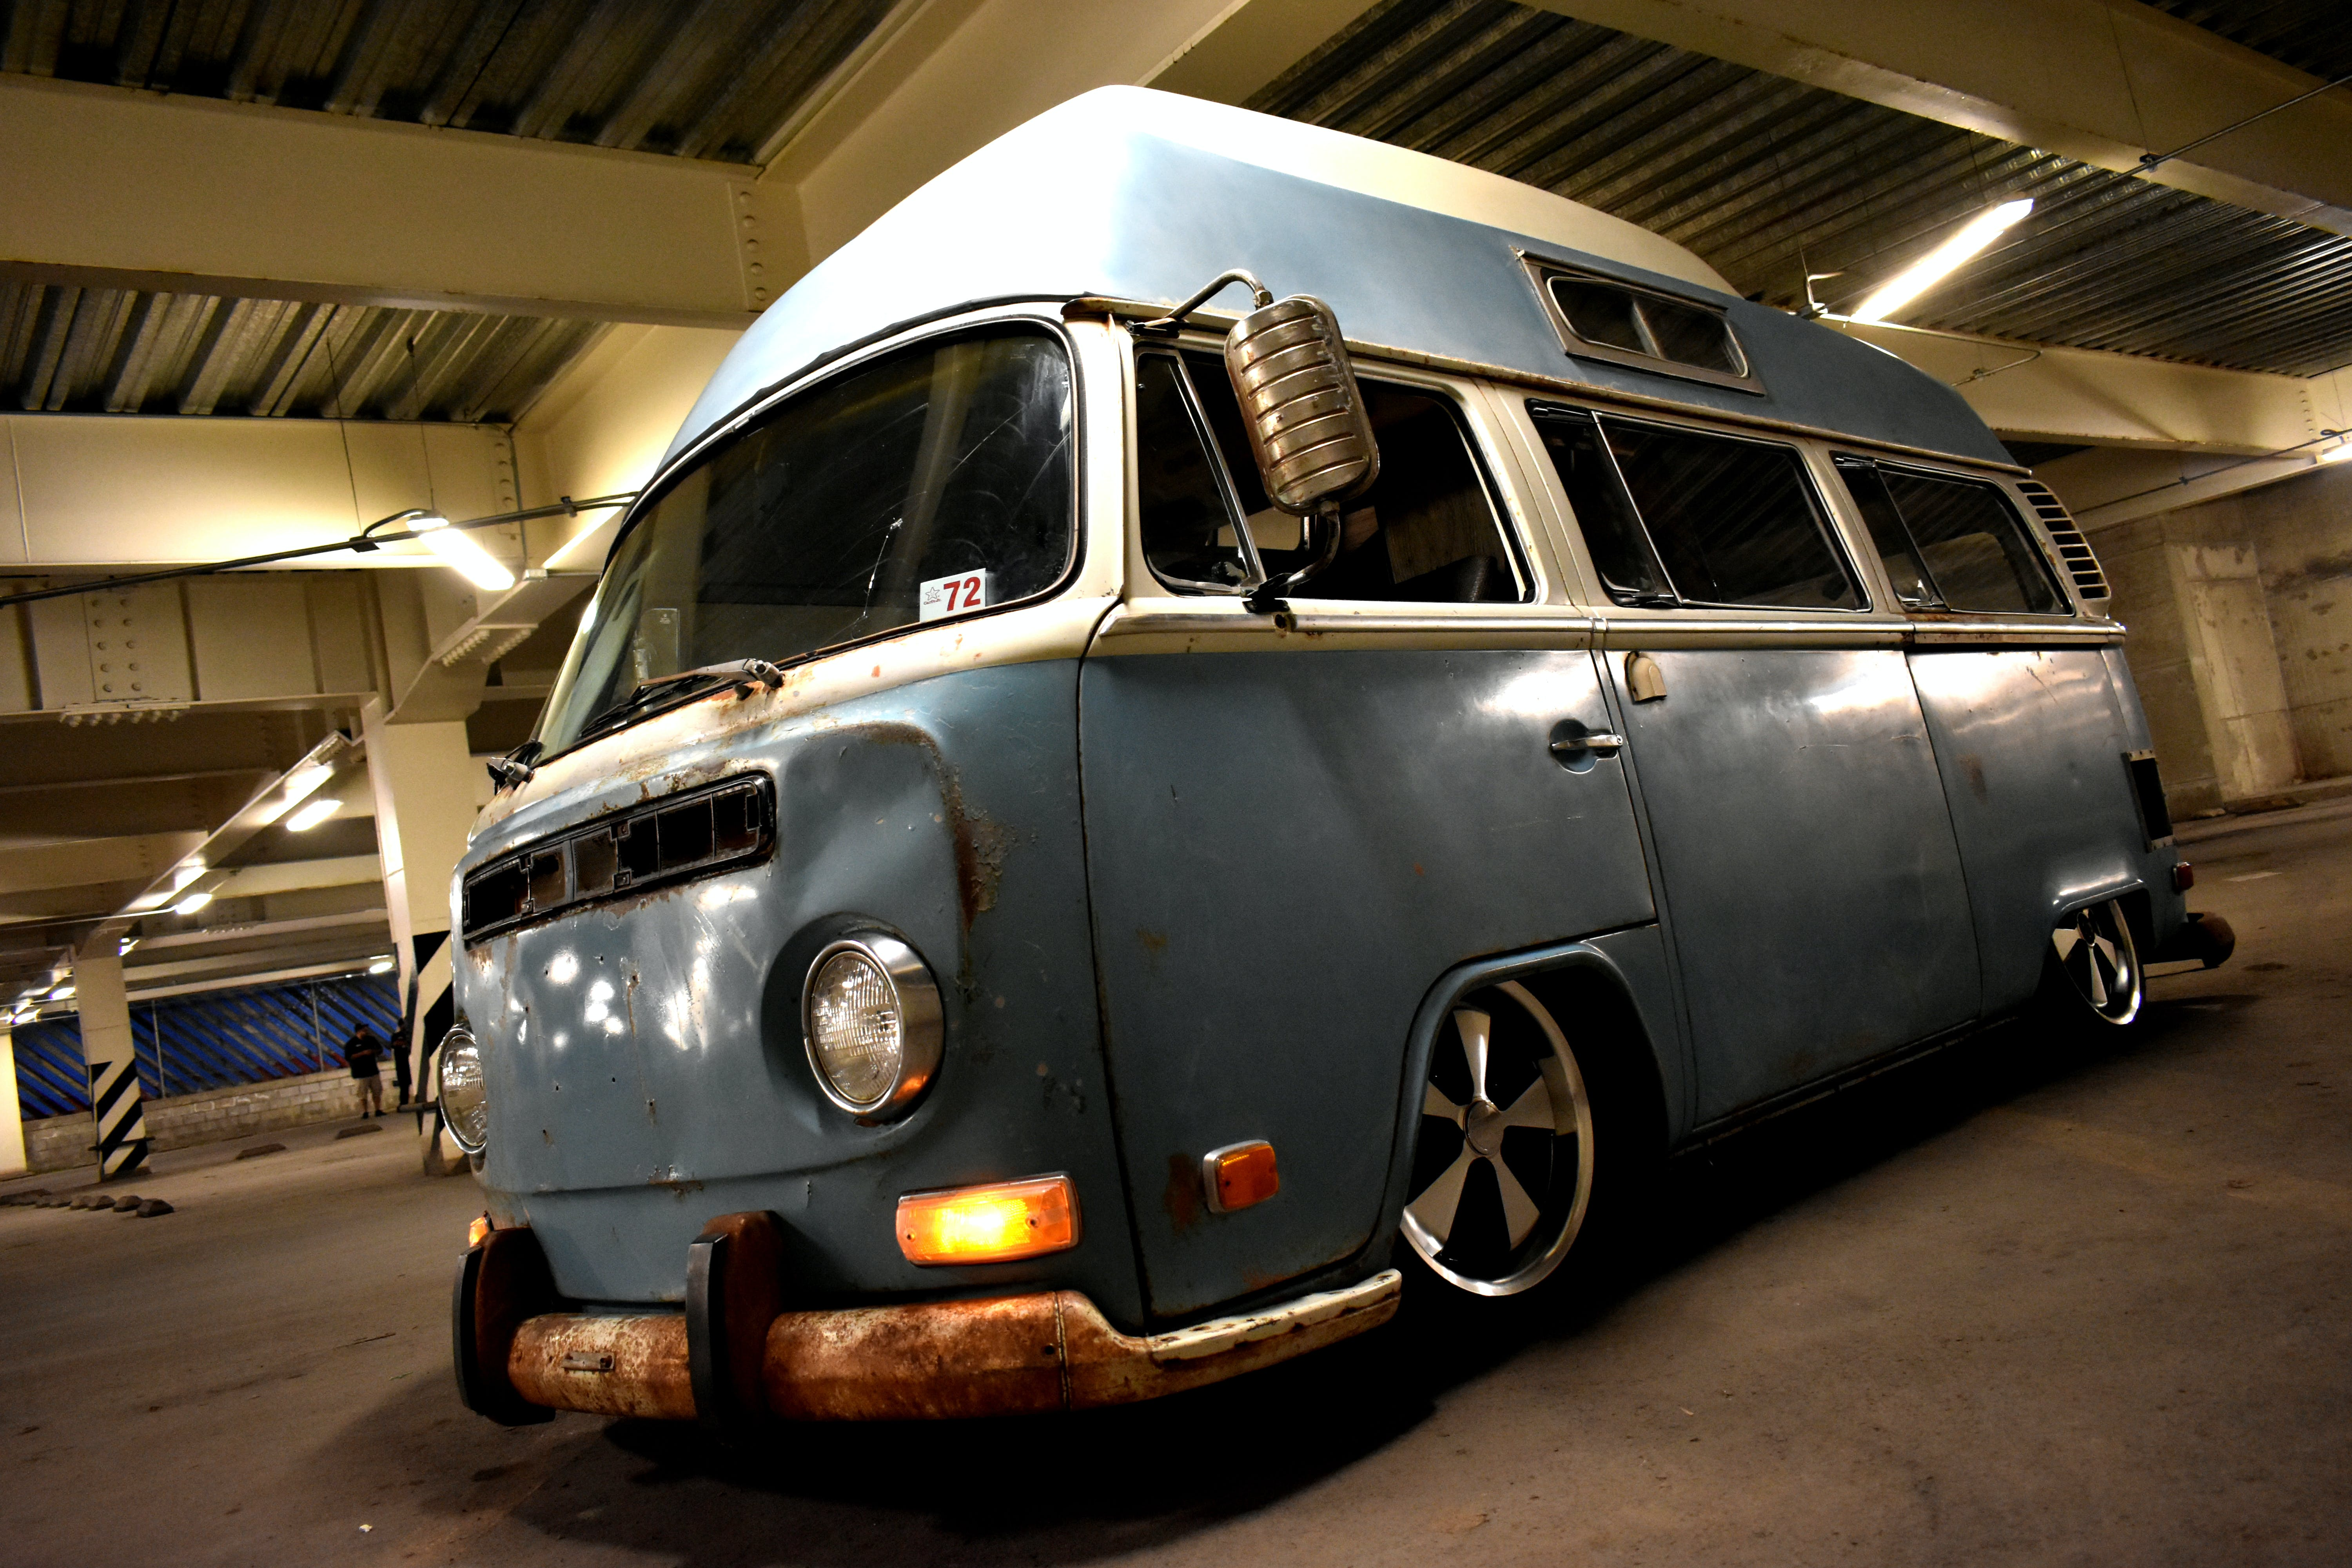 Classic Blue and White Van Parked Inside Building